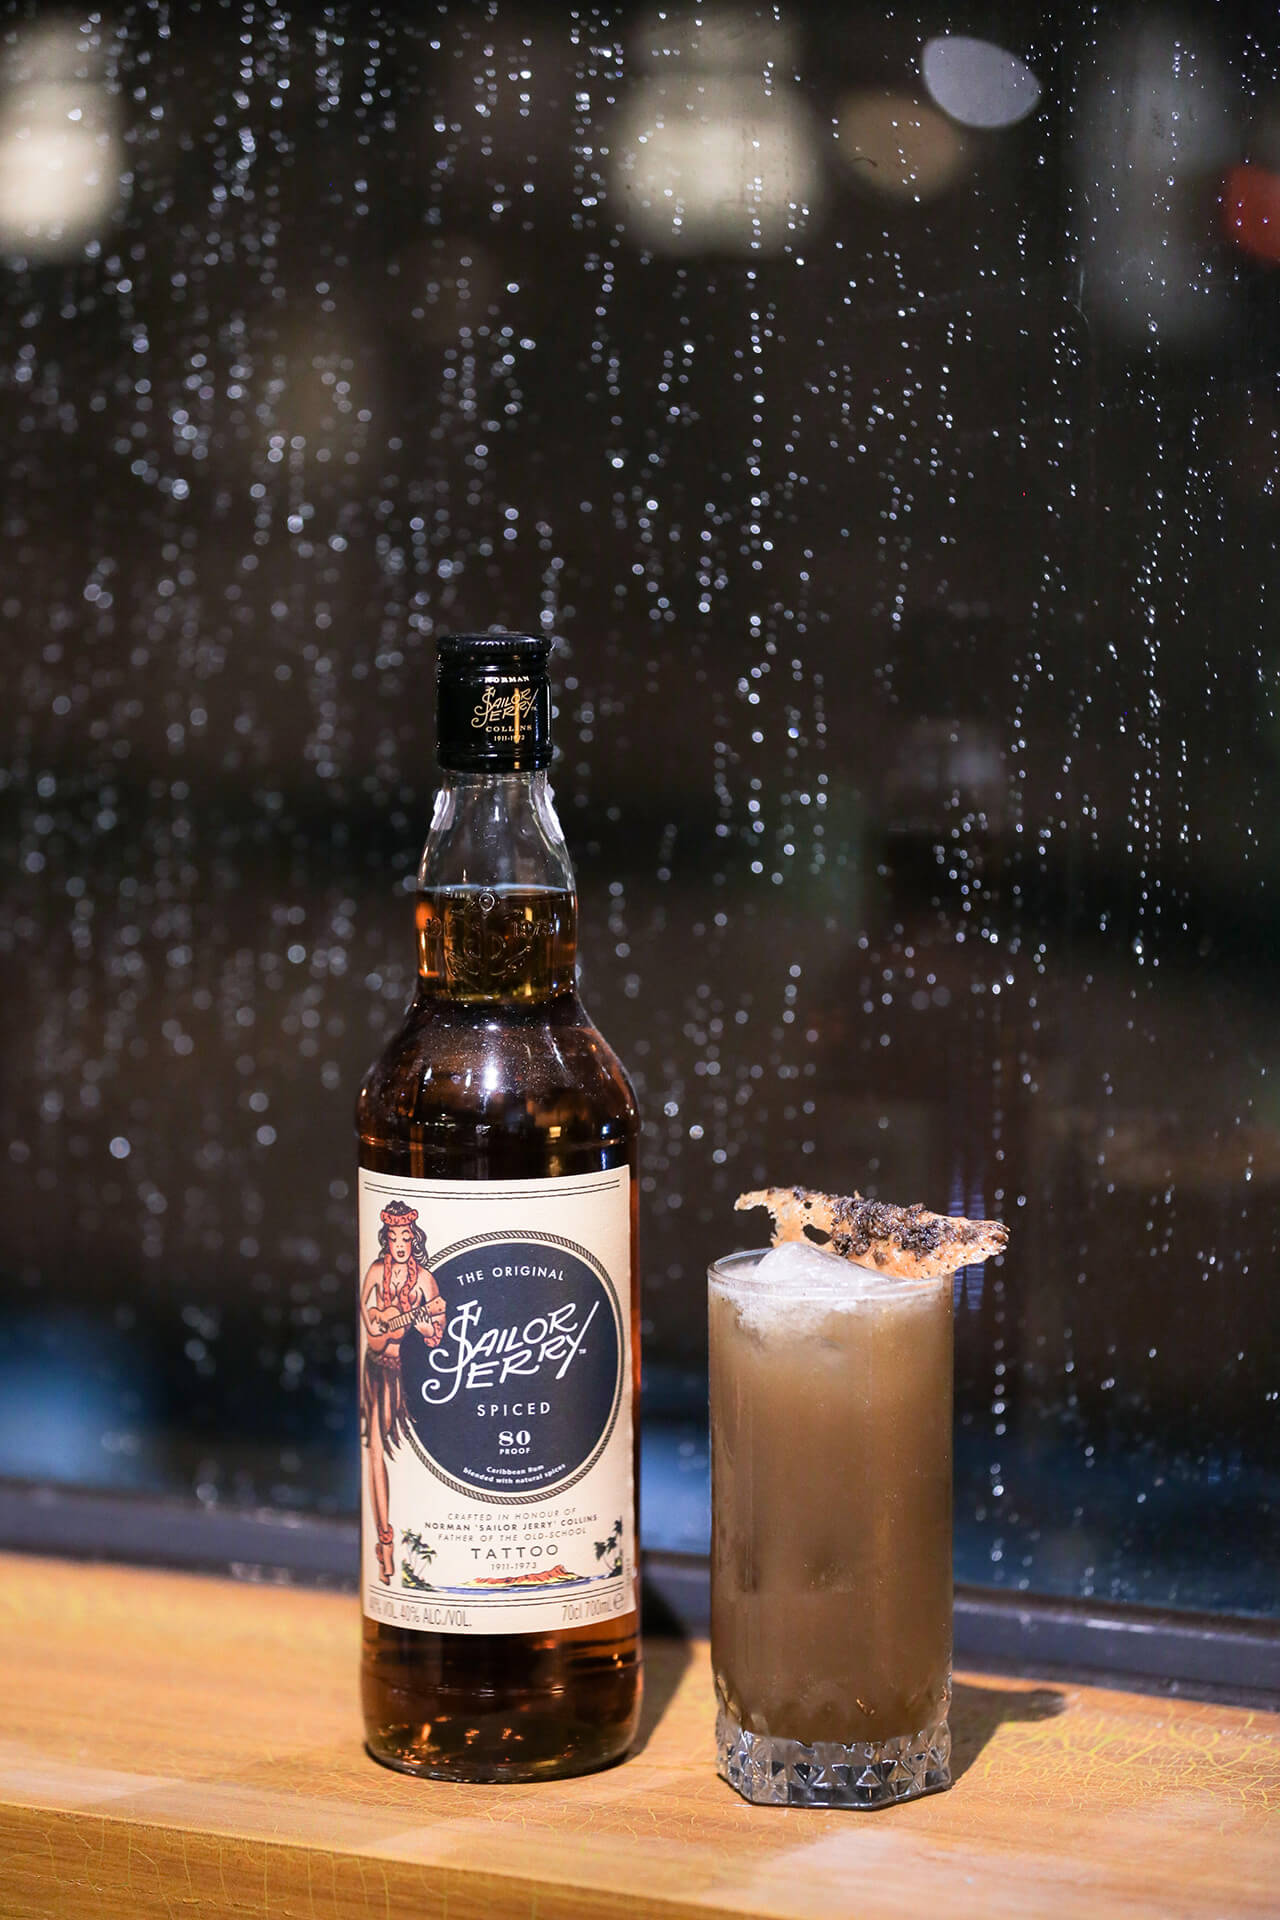 DARKER THAN STORMY cocktail by Edriane Lim, made with Sailor Jerry spiced Carribean rum